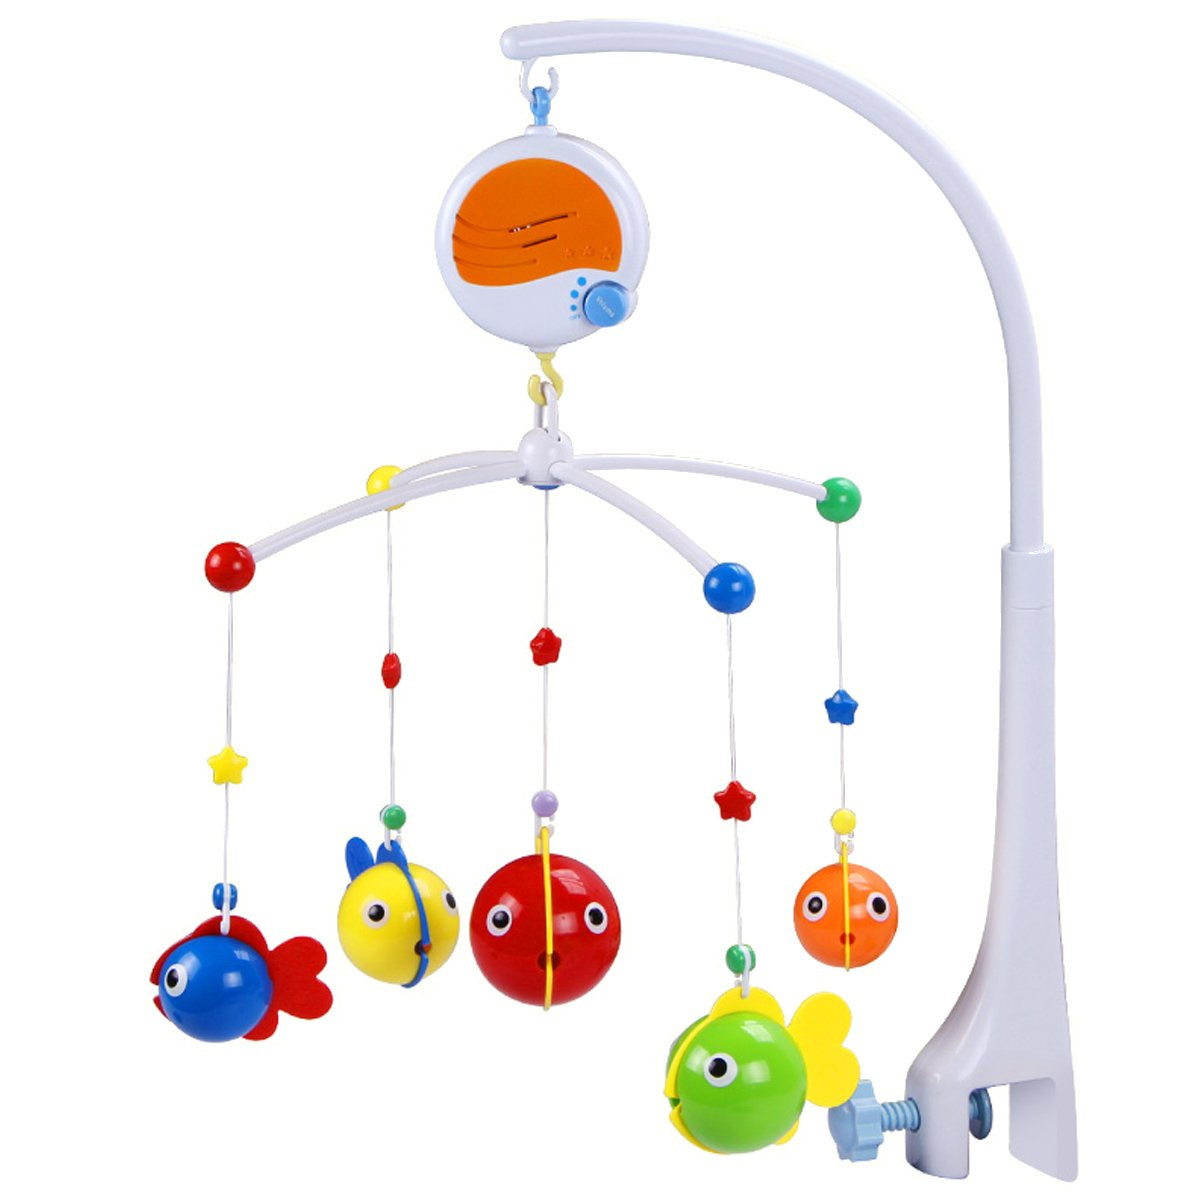 fisca Baby Musical Crib Mobile, Infant Bed Decoration Toy Hanging Rotating Bell with Melodies